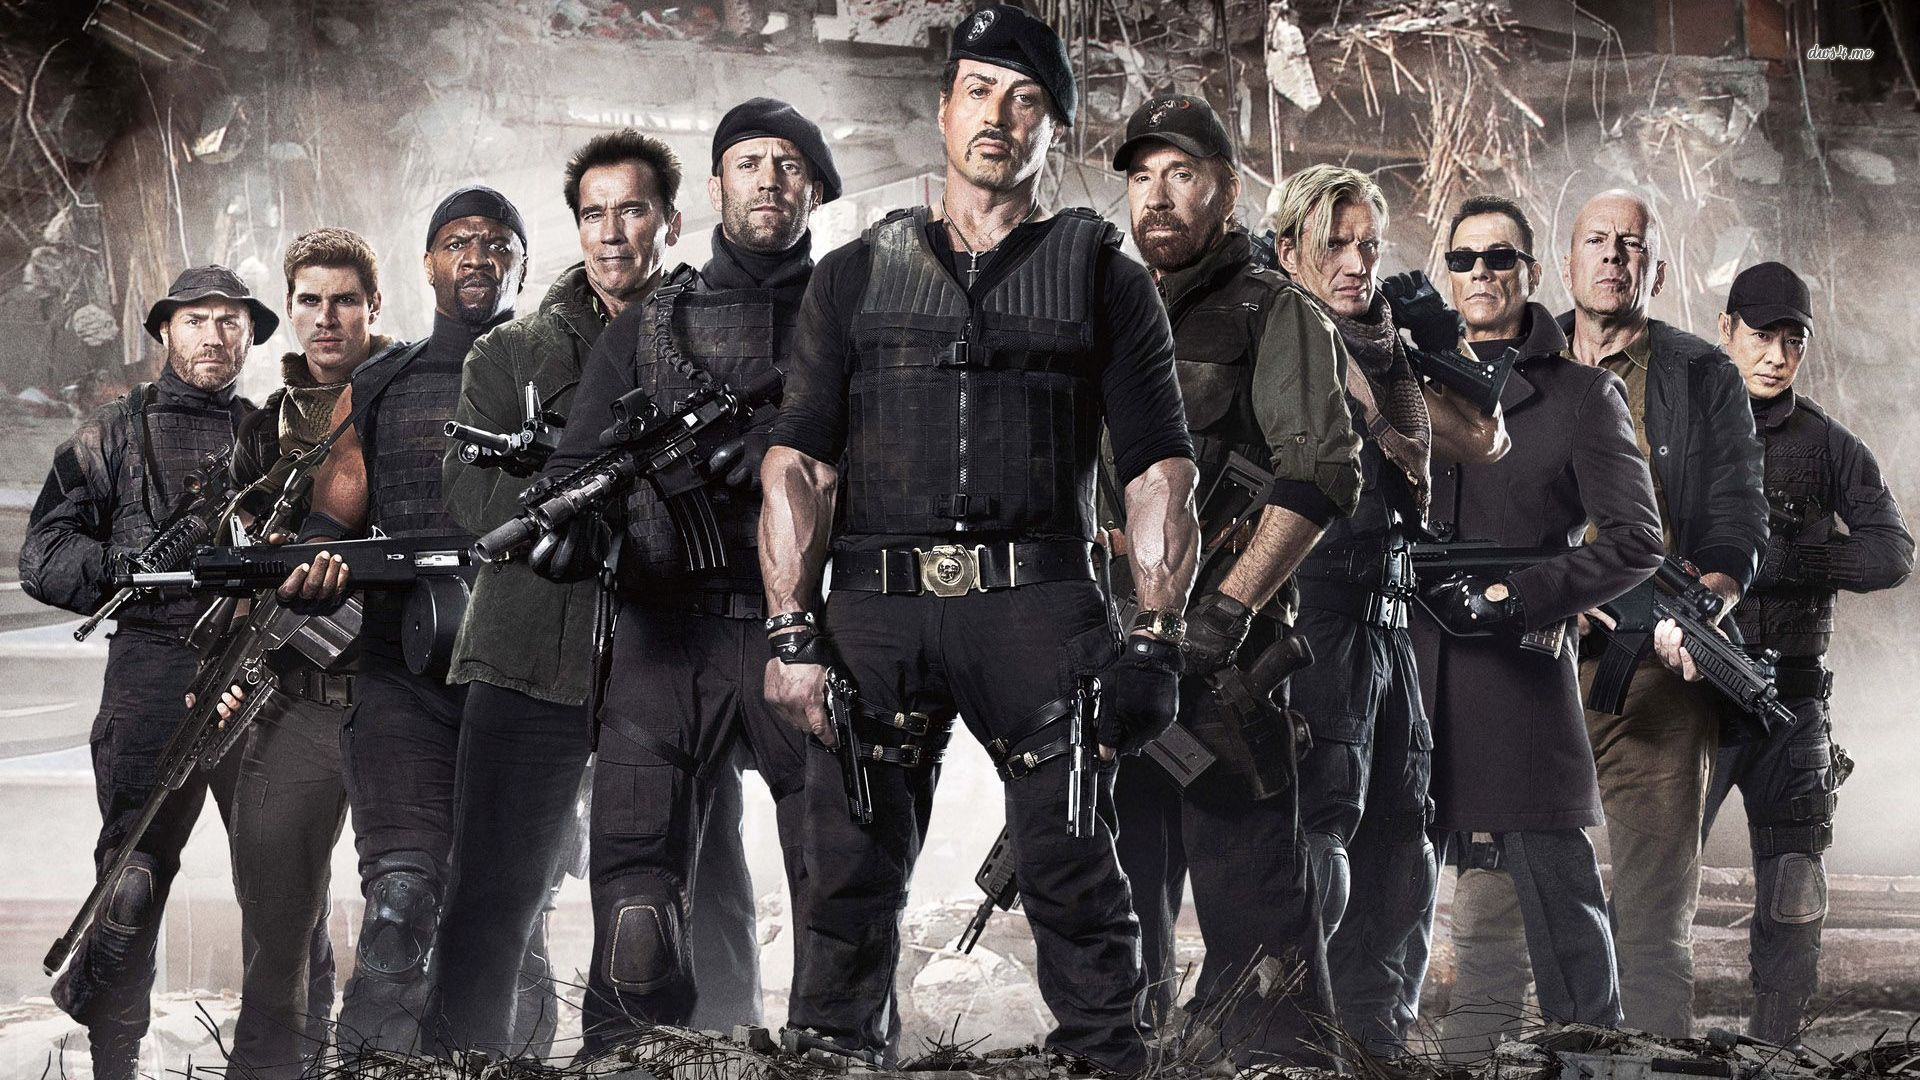 agenti cinema group | expendables 2